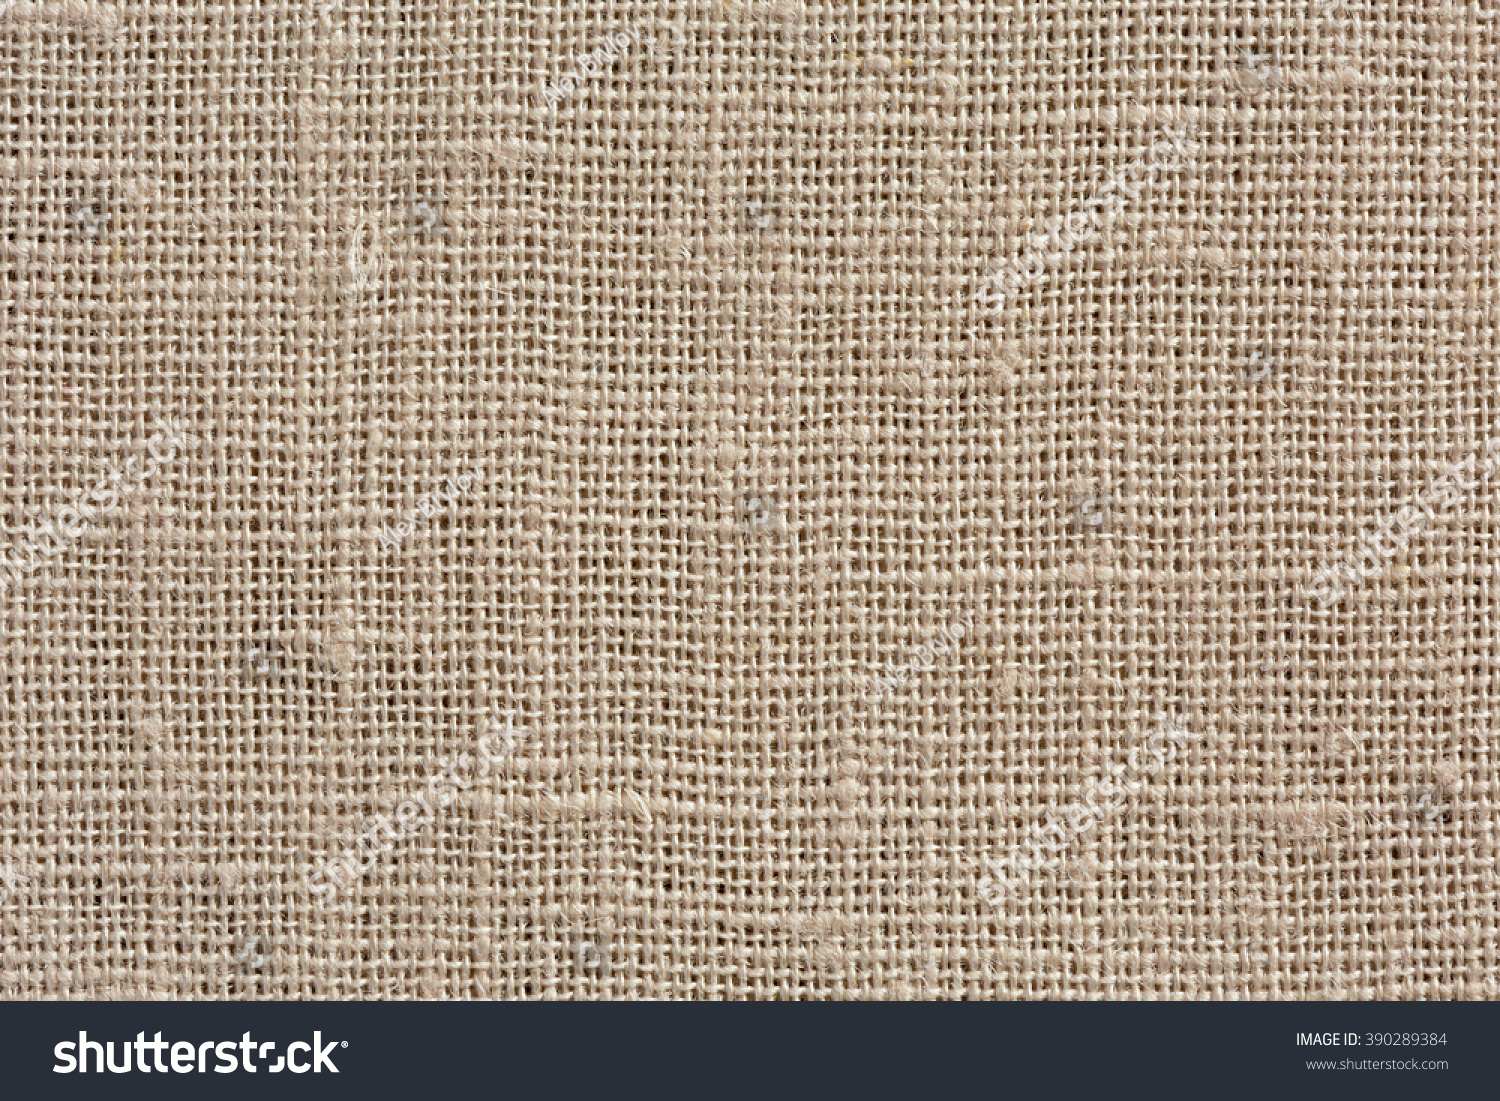 neutral light brown linen fabric background with clear canvas texture close up brown linen fabric lighting